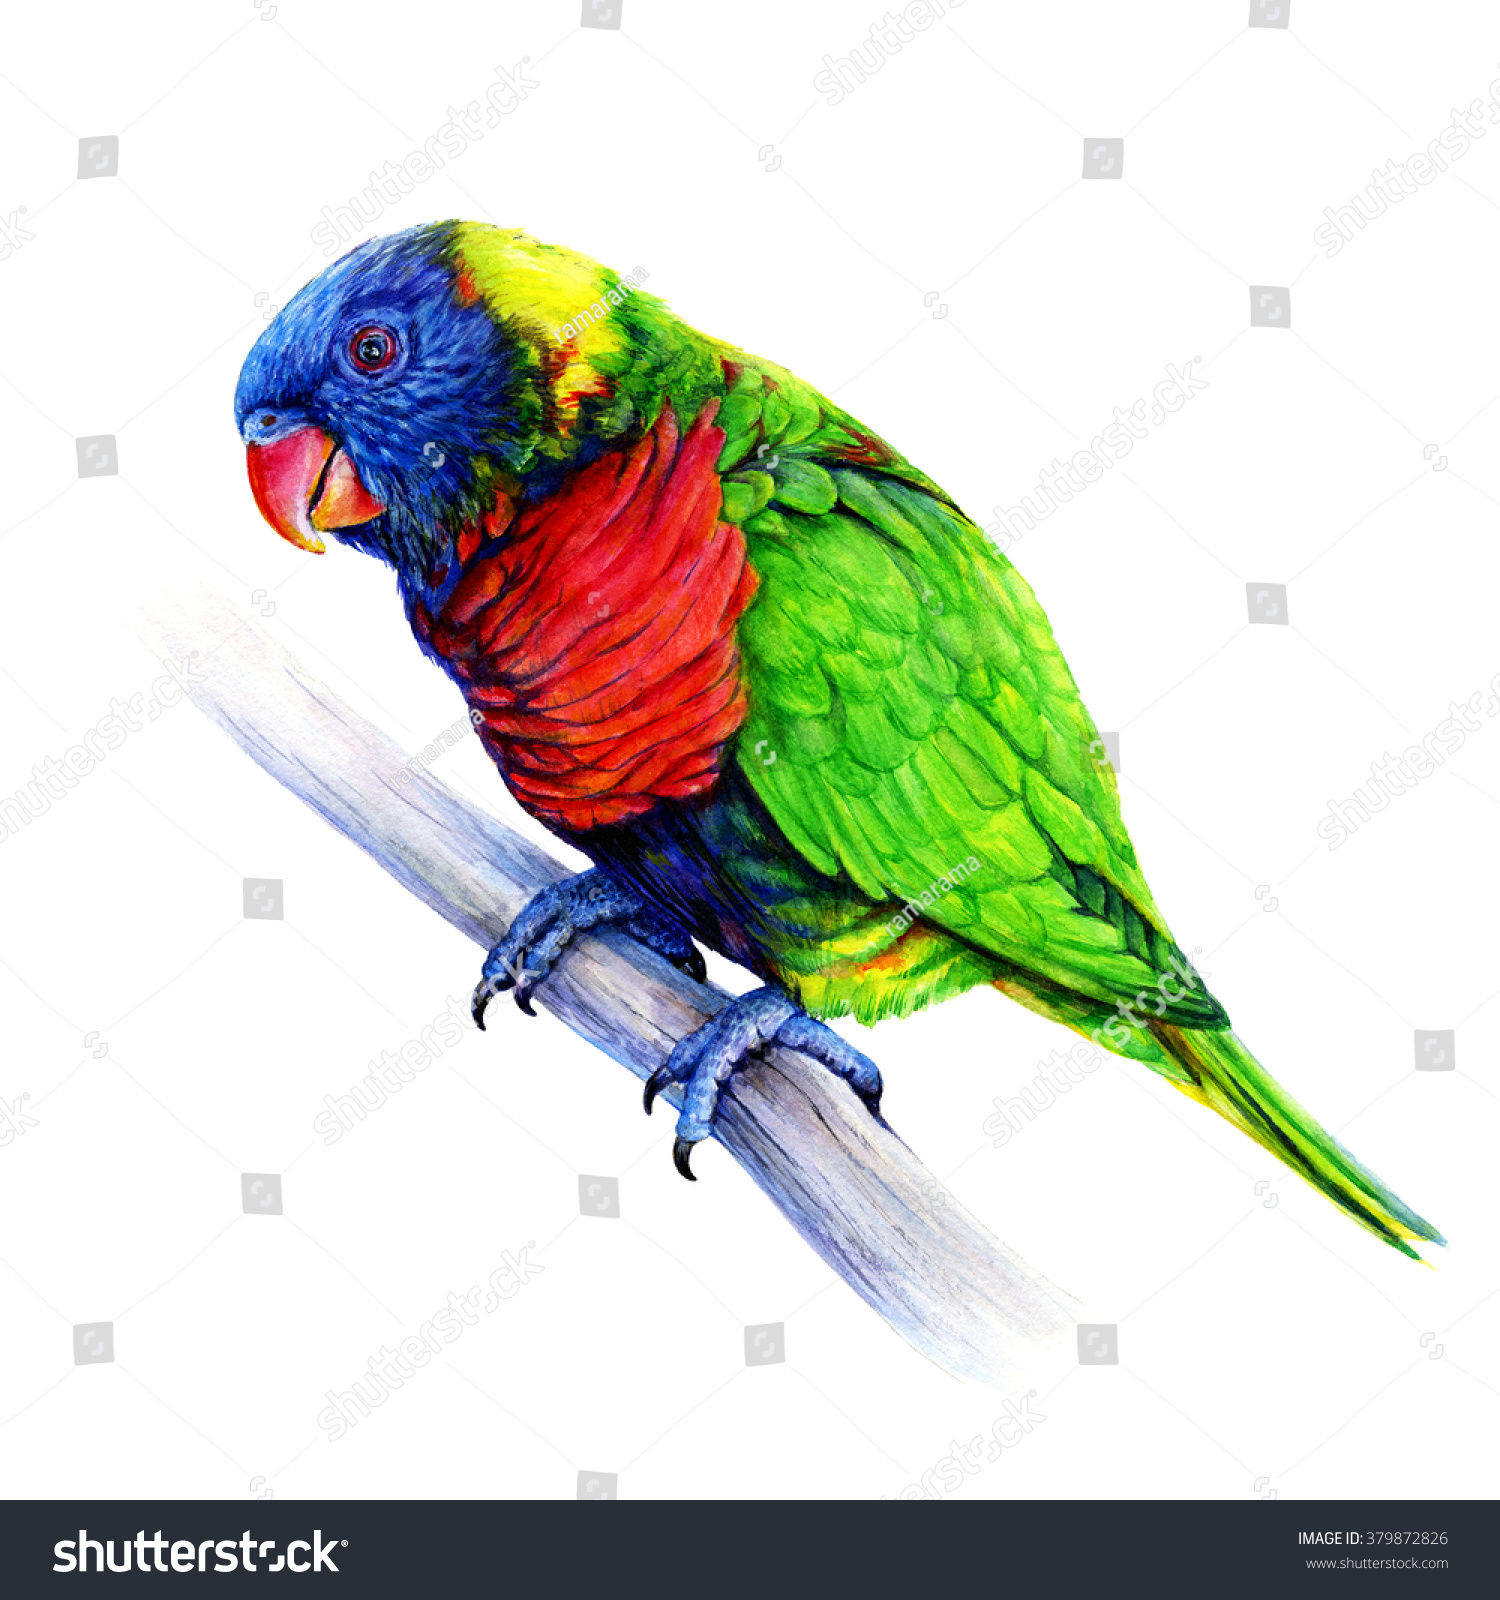 Lutter Contre Les Fourmis Naturellement Digital Painting Of Rainbow Lorikeet Parrots Stock Photo